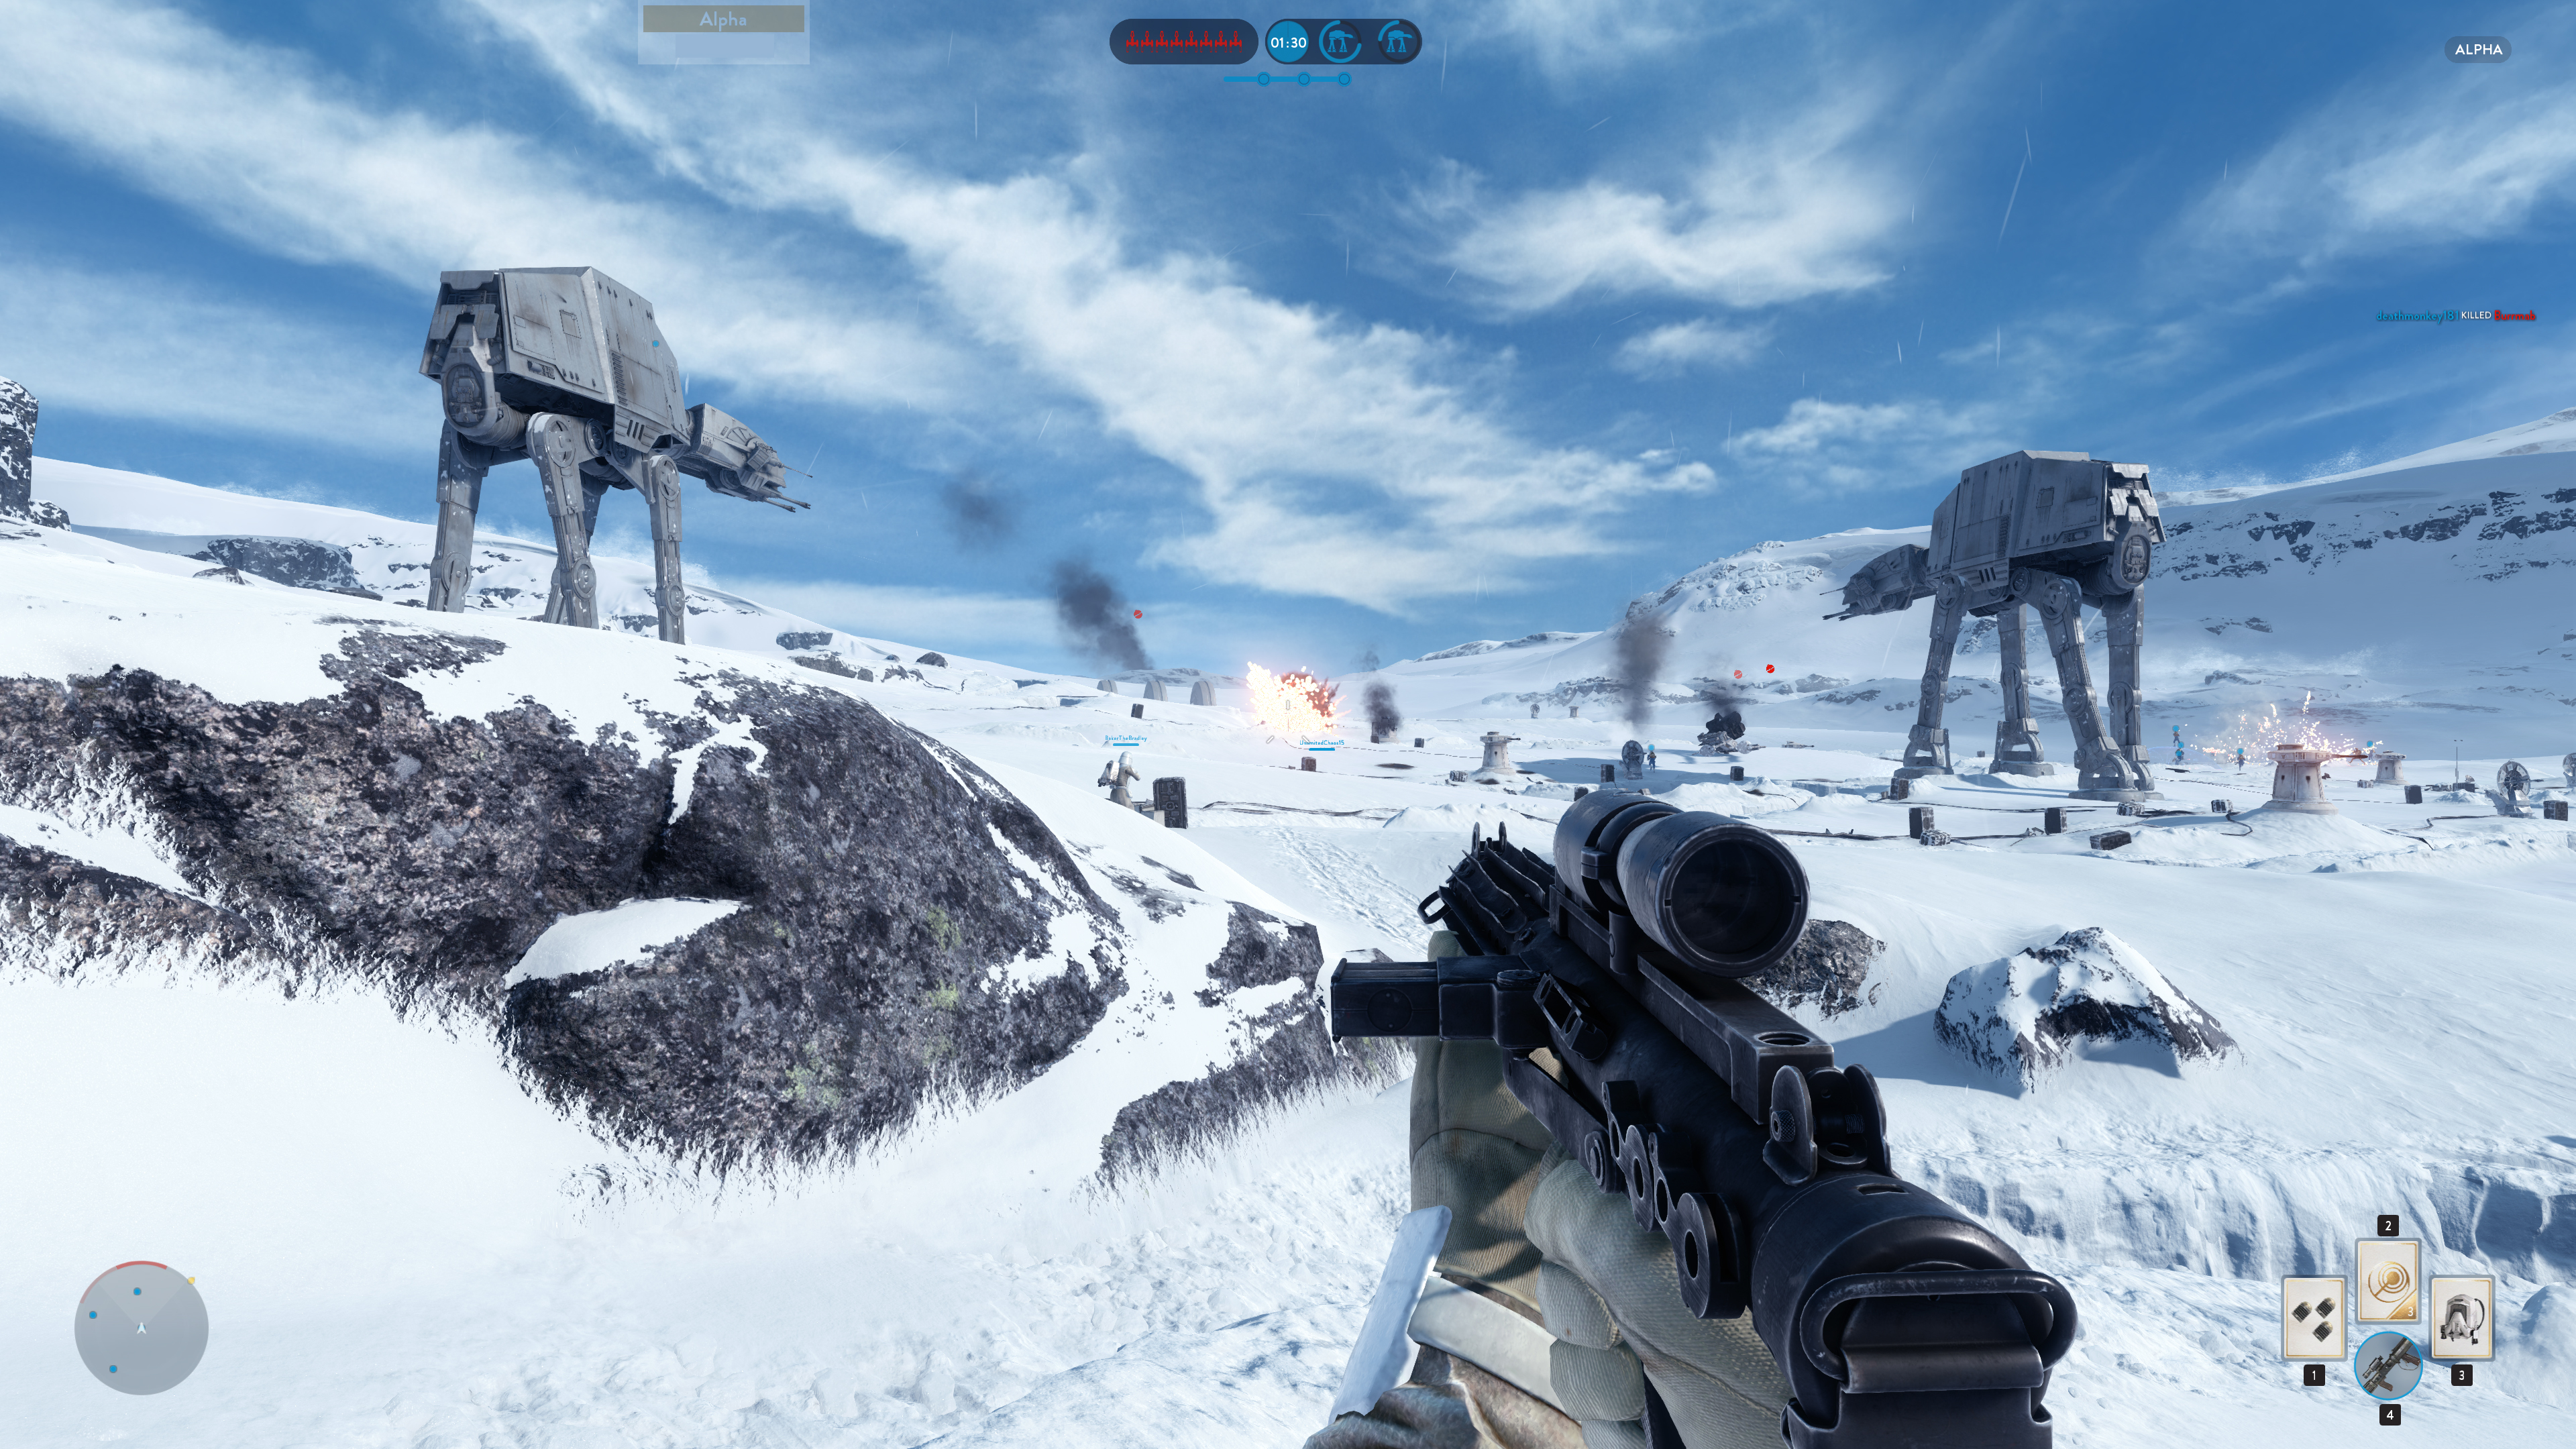 Star Wars Battlefront DLC February Update